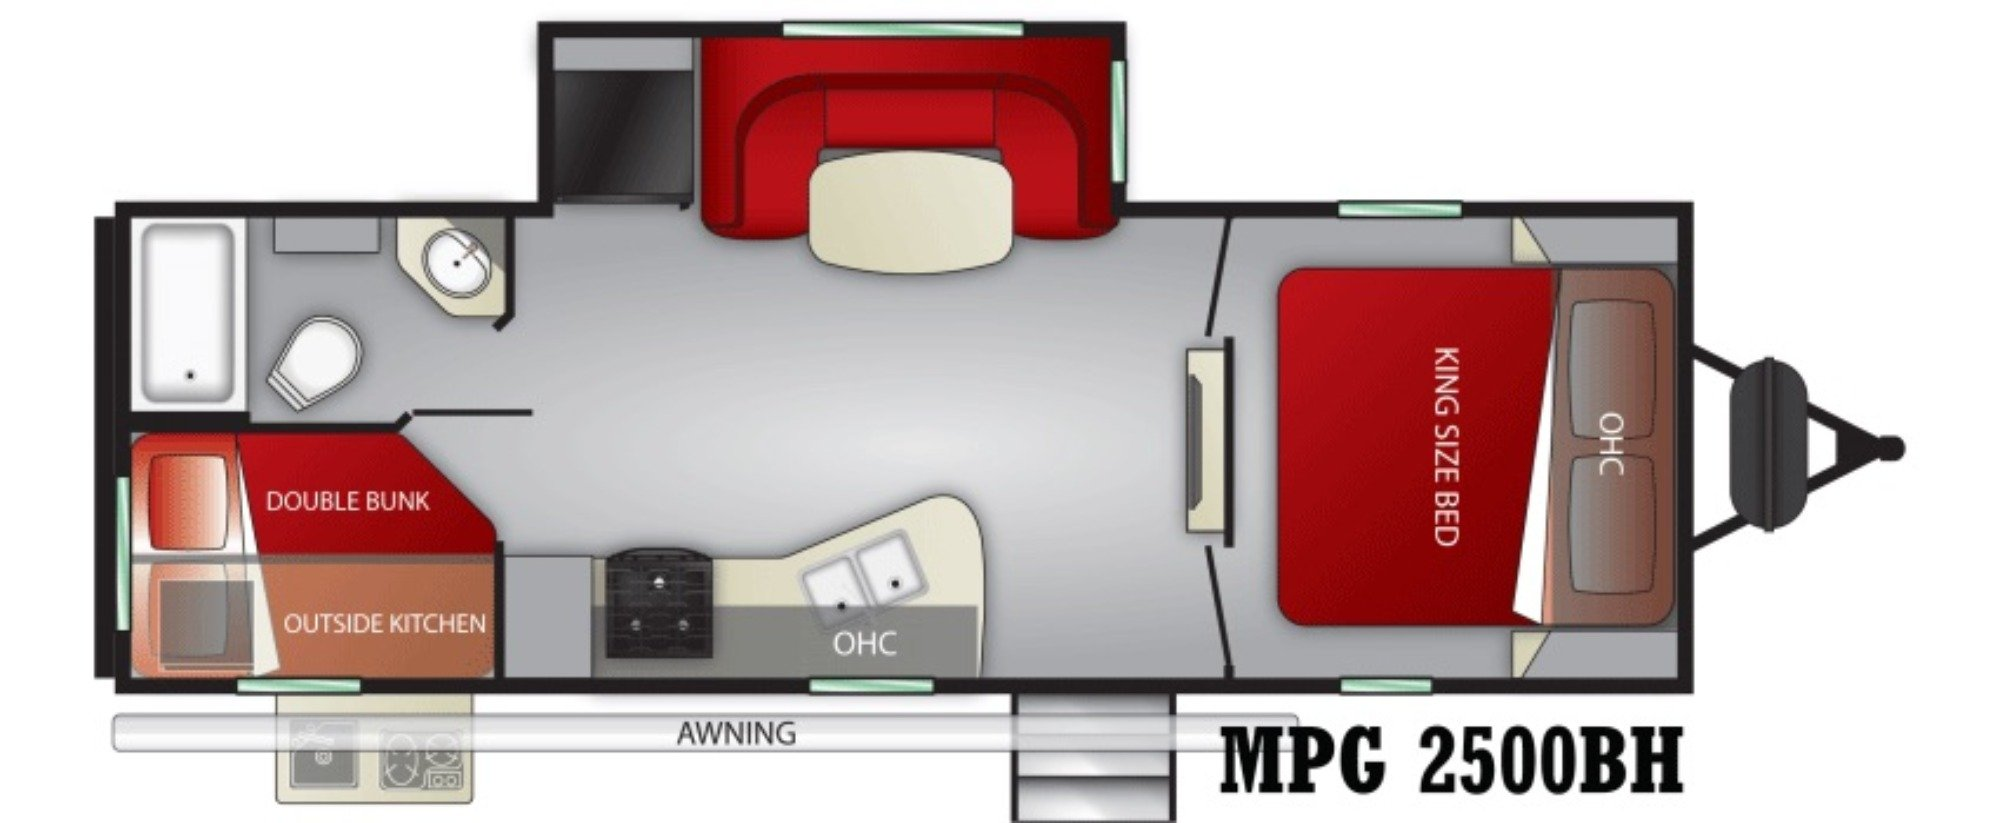 View Floor Plan for 2021 CRUISER RV MPG 2500BH